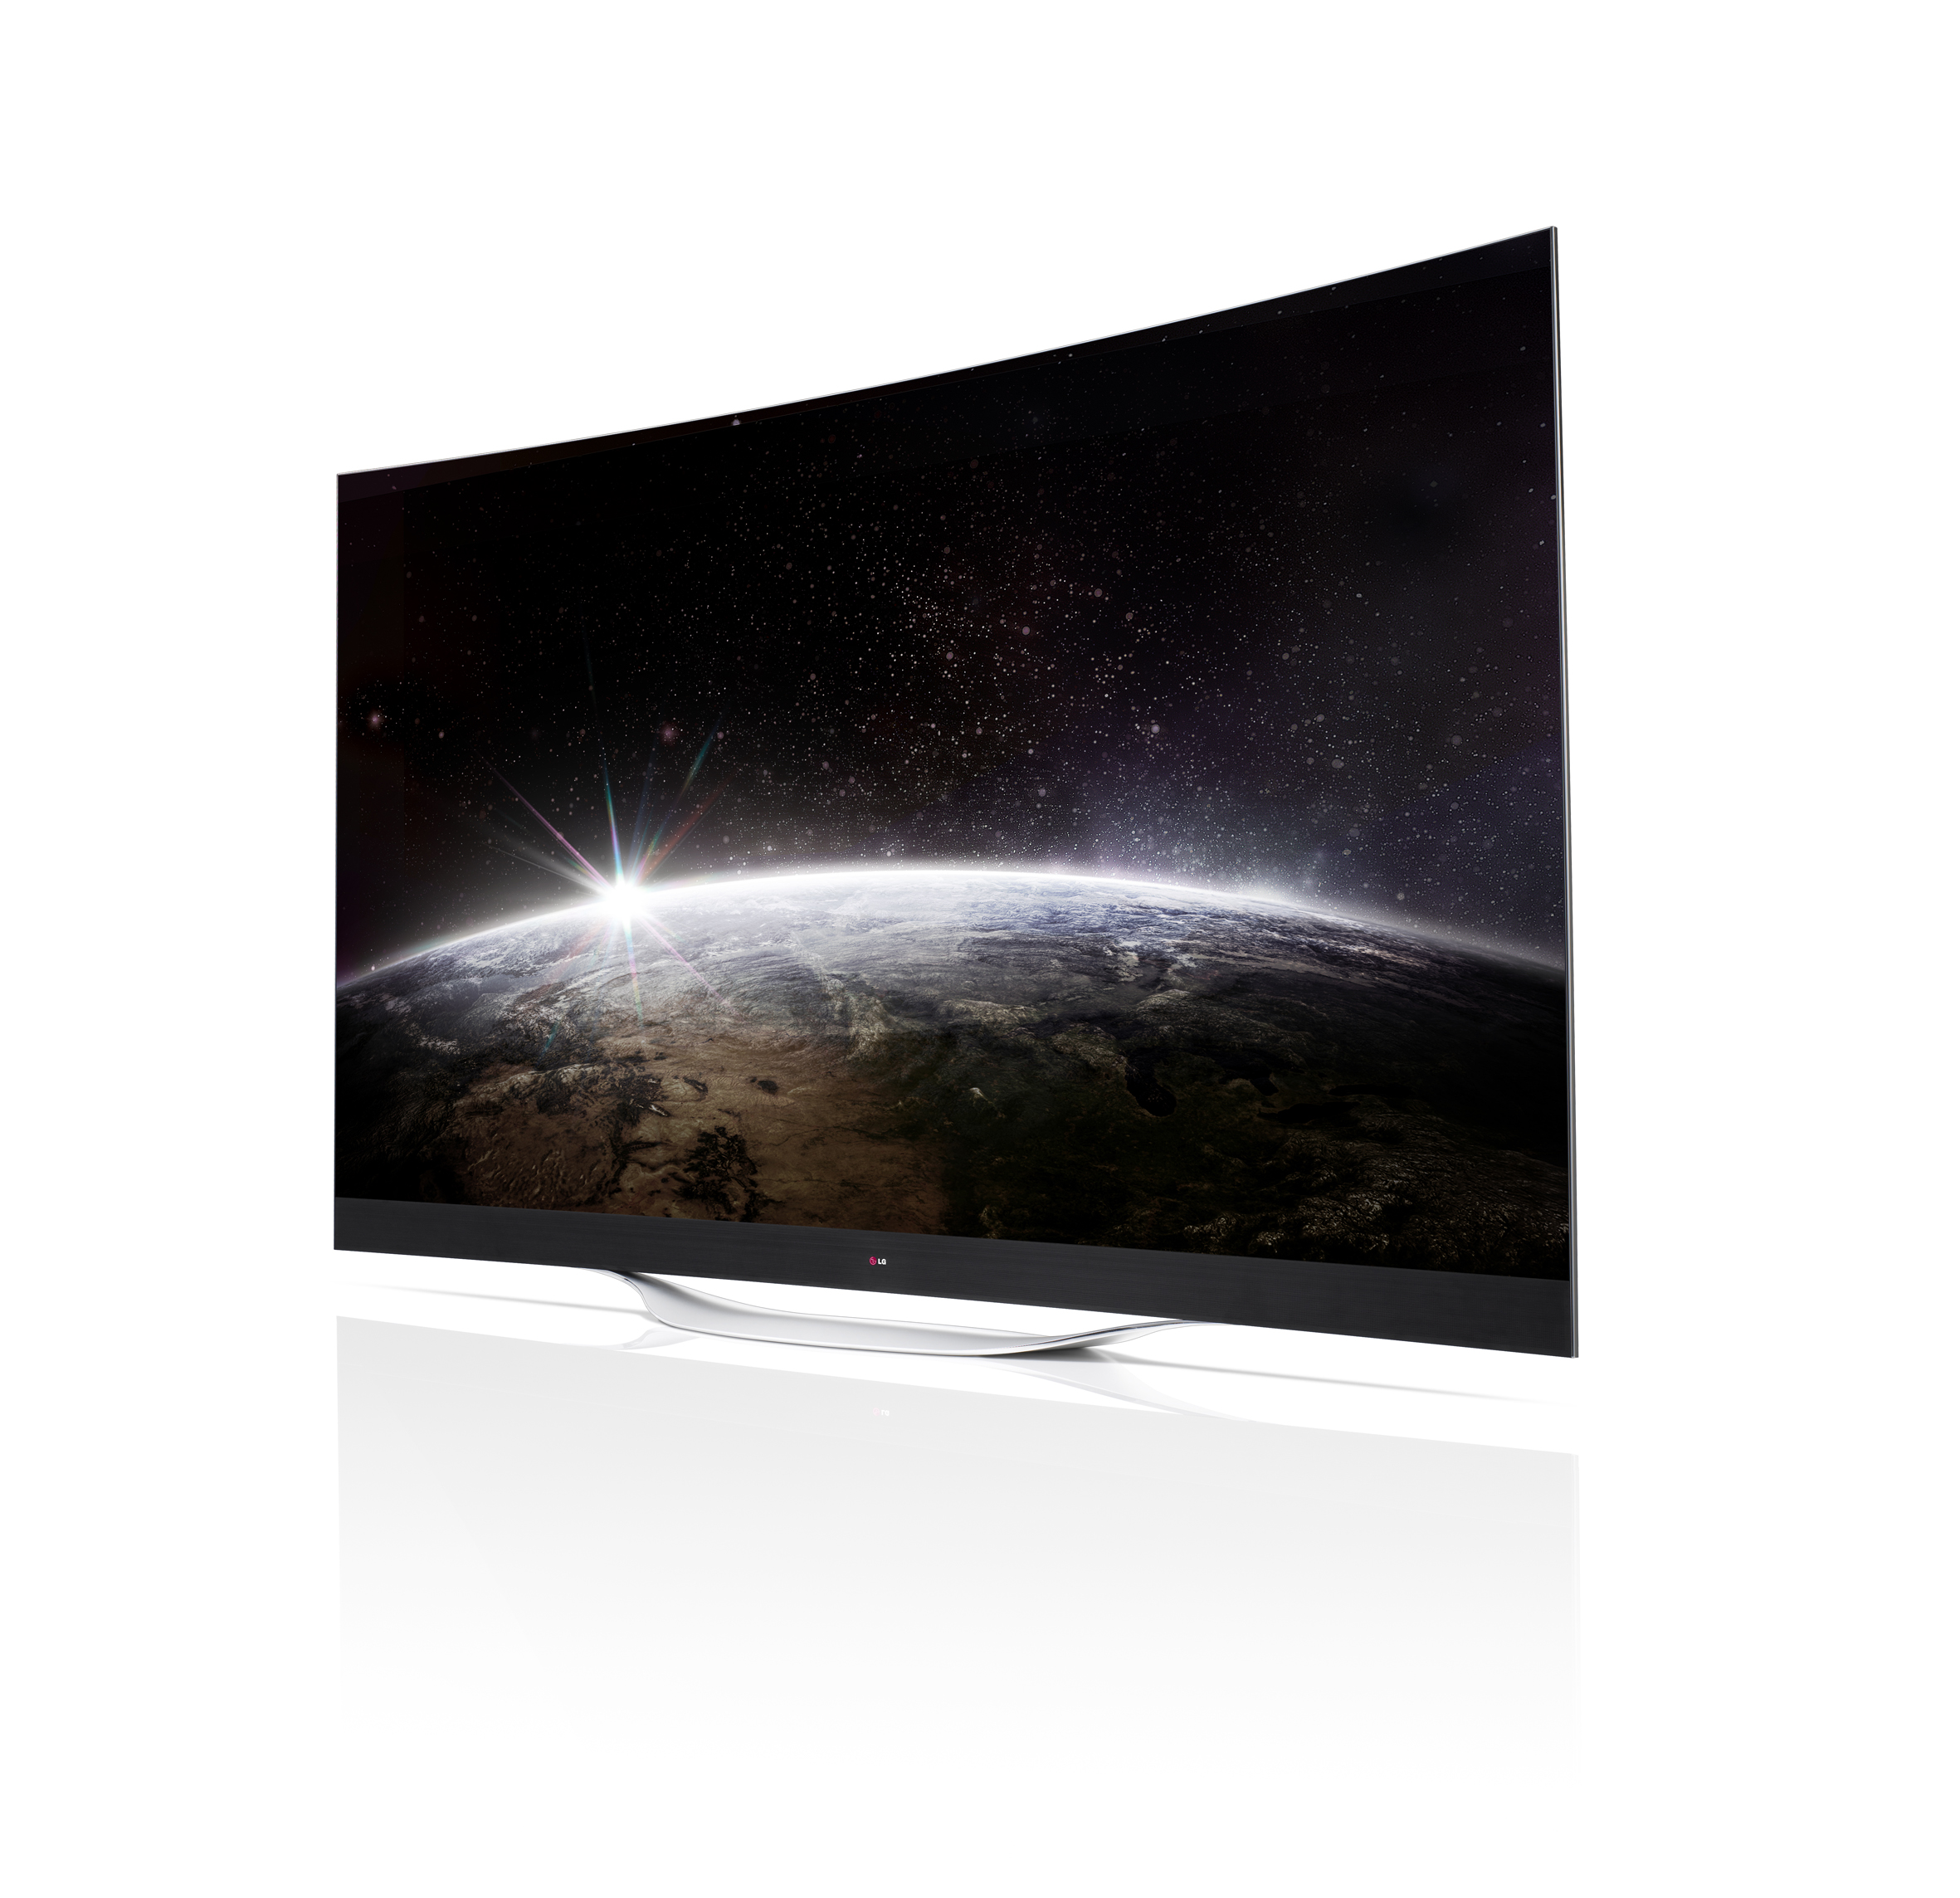 lg first to commercialize 4k oled tv lg newsroom. Black Bedroom Furniture Sets. Home Design Ideas